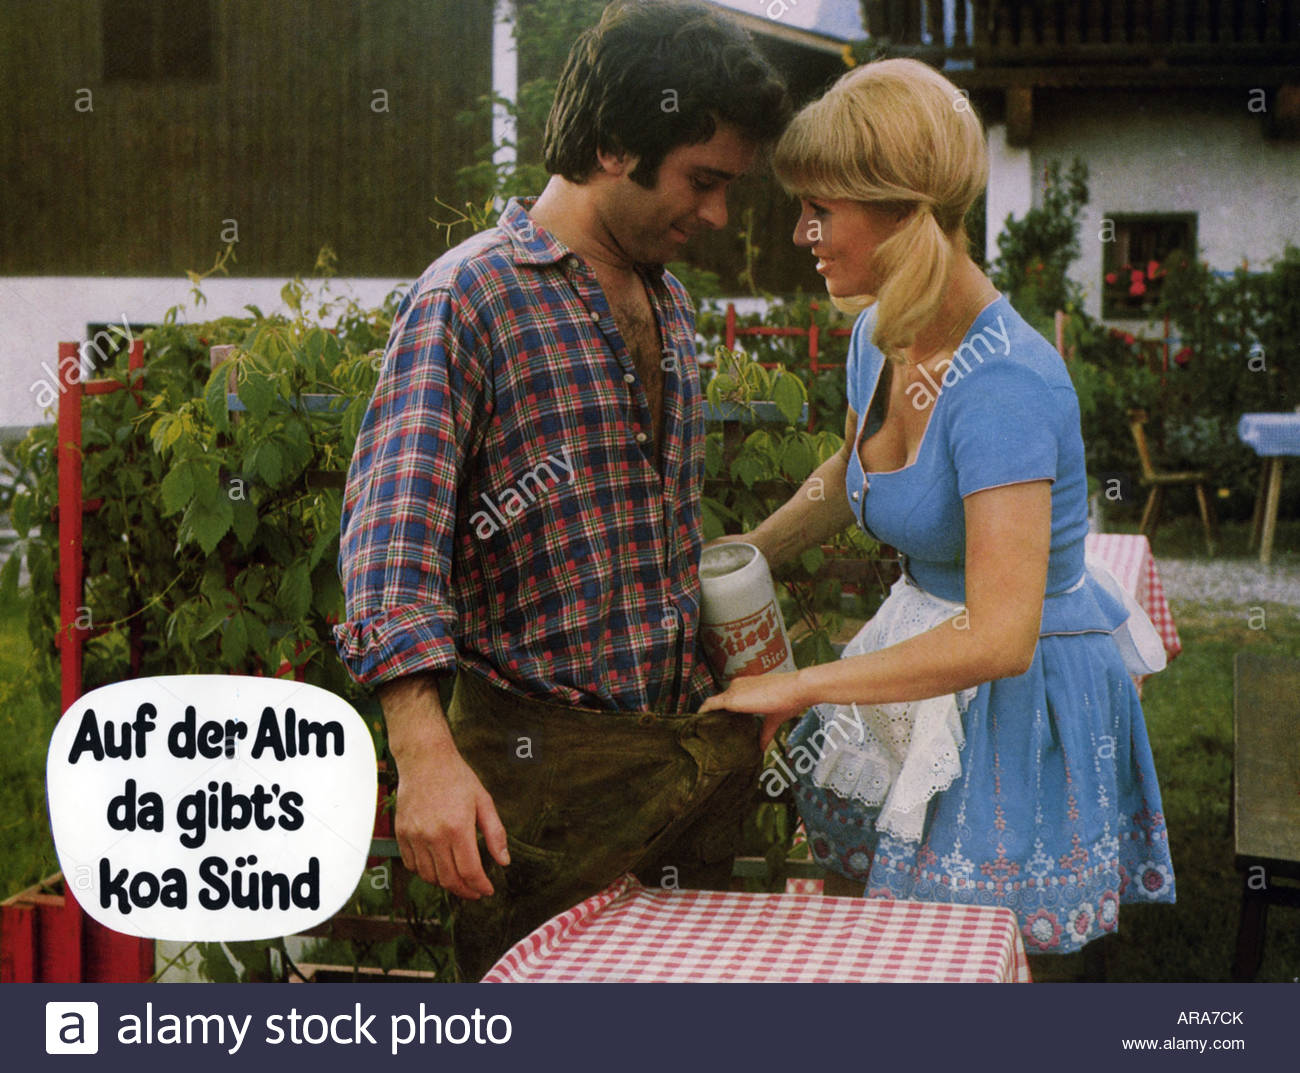 movie auf der alm da gibt 39 s koa s nd deu 1974 director franz stock photo 15989826 alamy. Black Bedroom Furniture Sets. Home Design Ideas